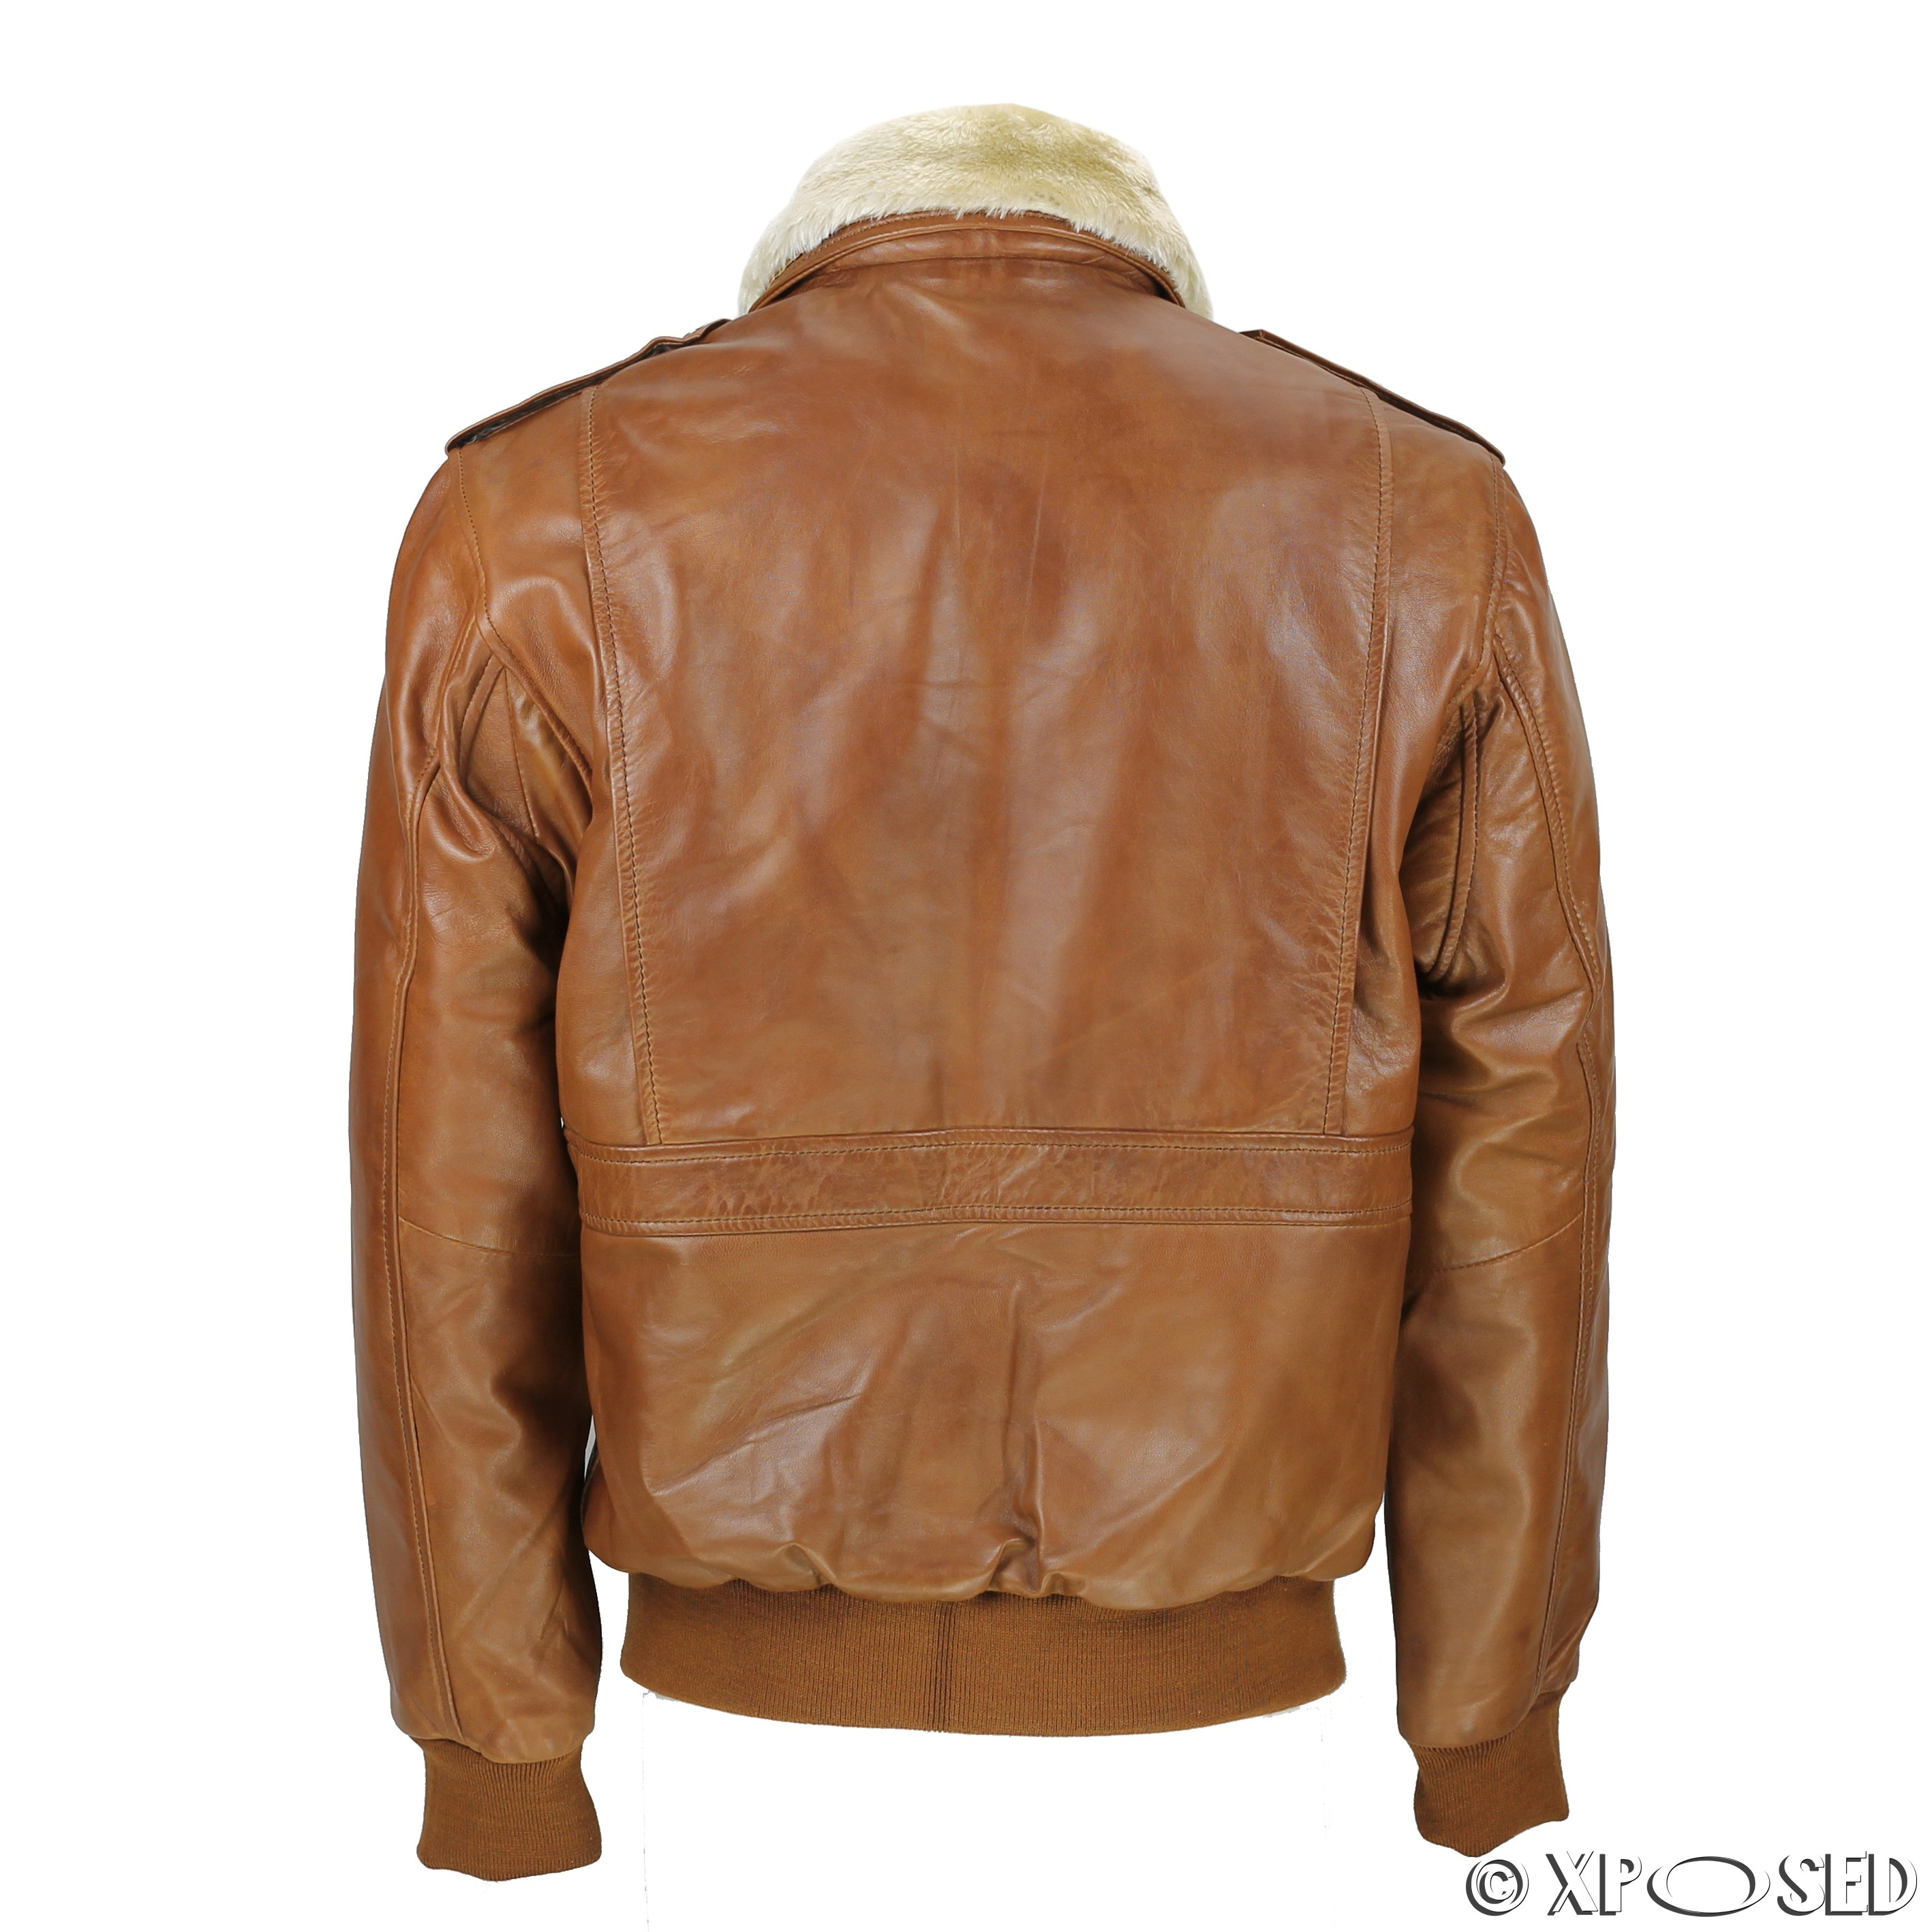 Vintage leather jacket with fur collar